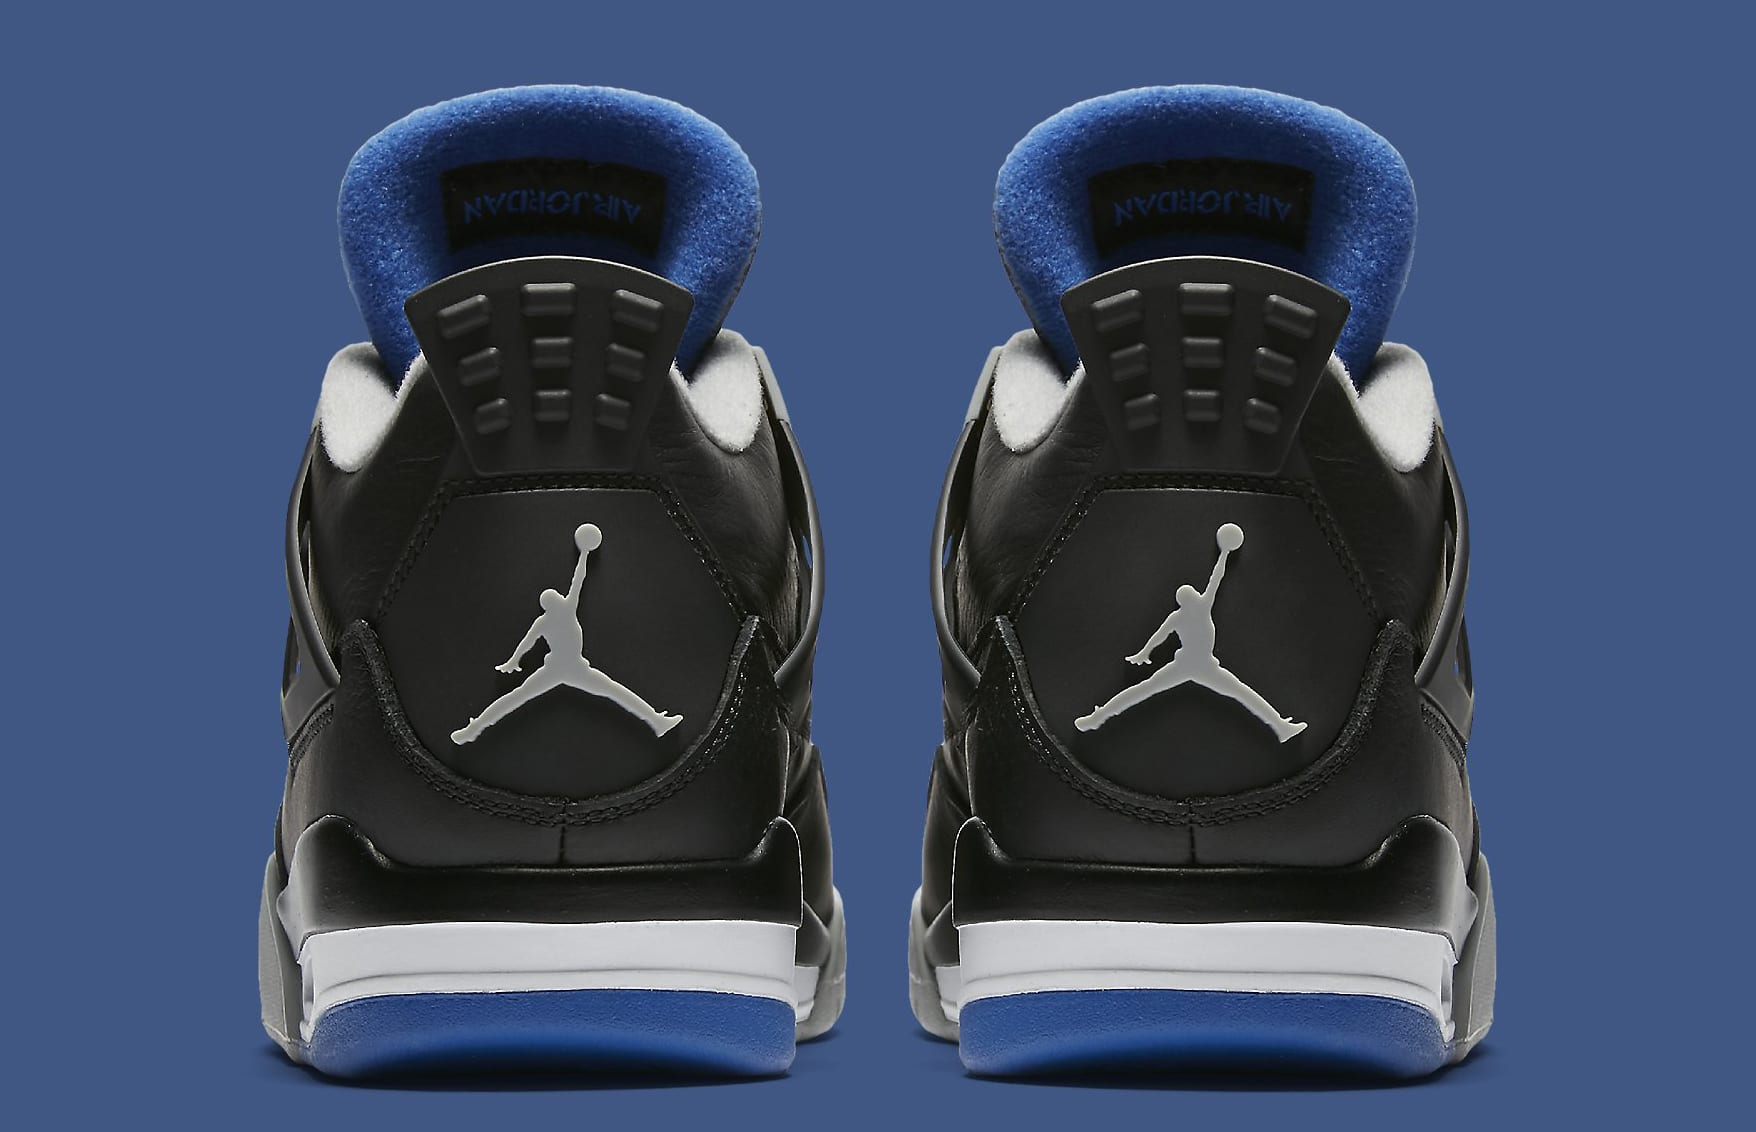 huge selection of 6dafc f0027 Air Jordan 4 Black Silver White Soar 308497-006 | Sole Collector